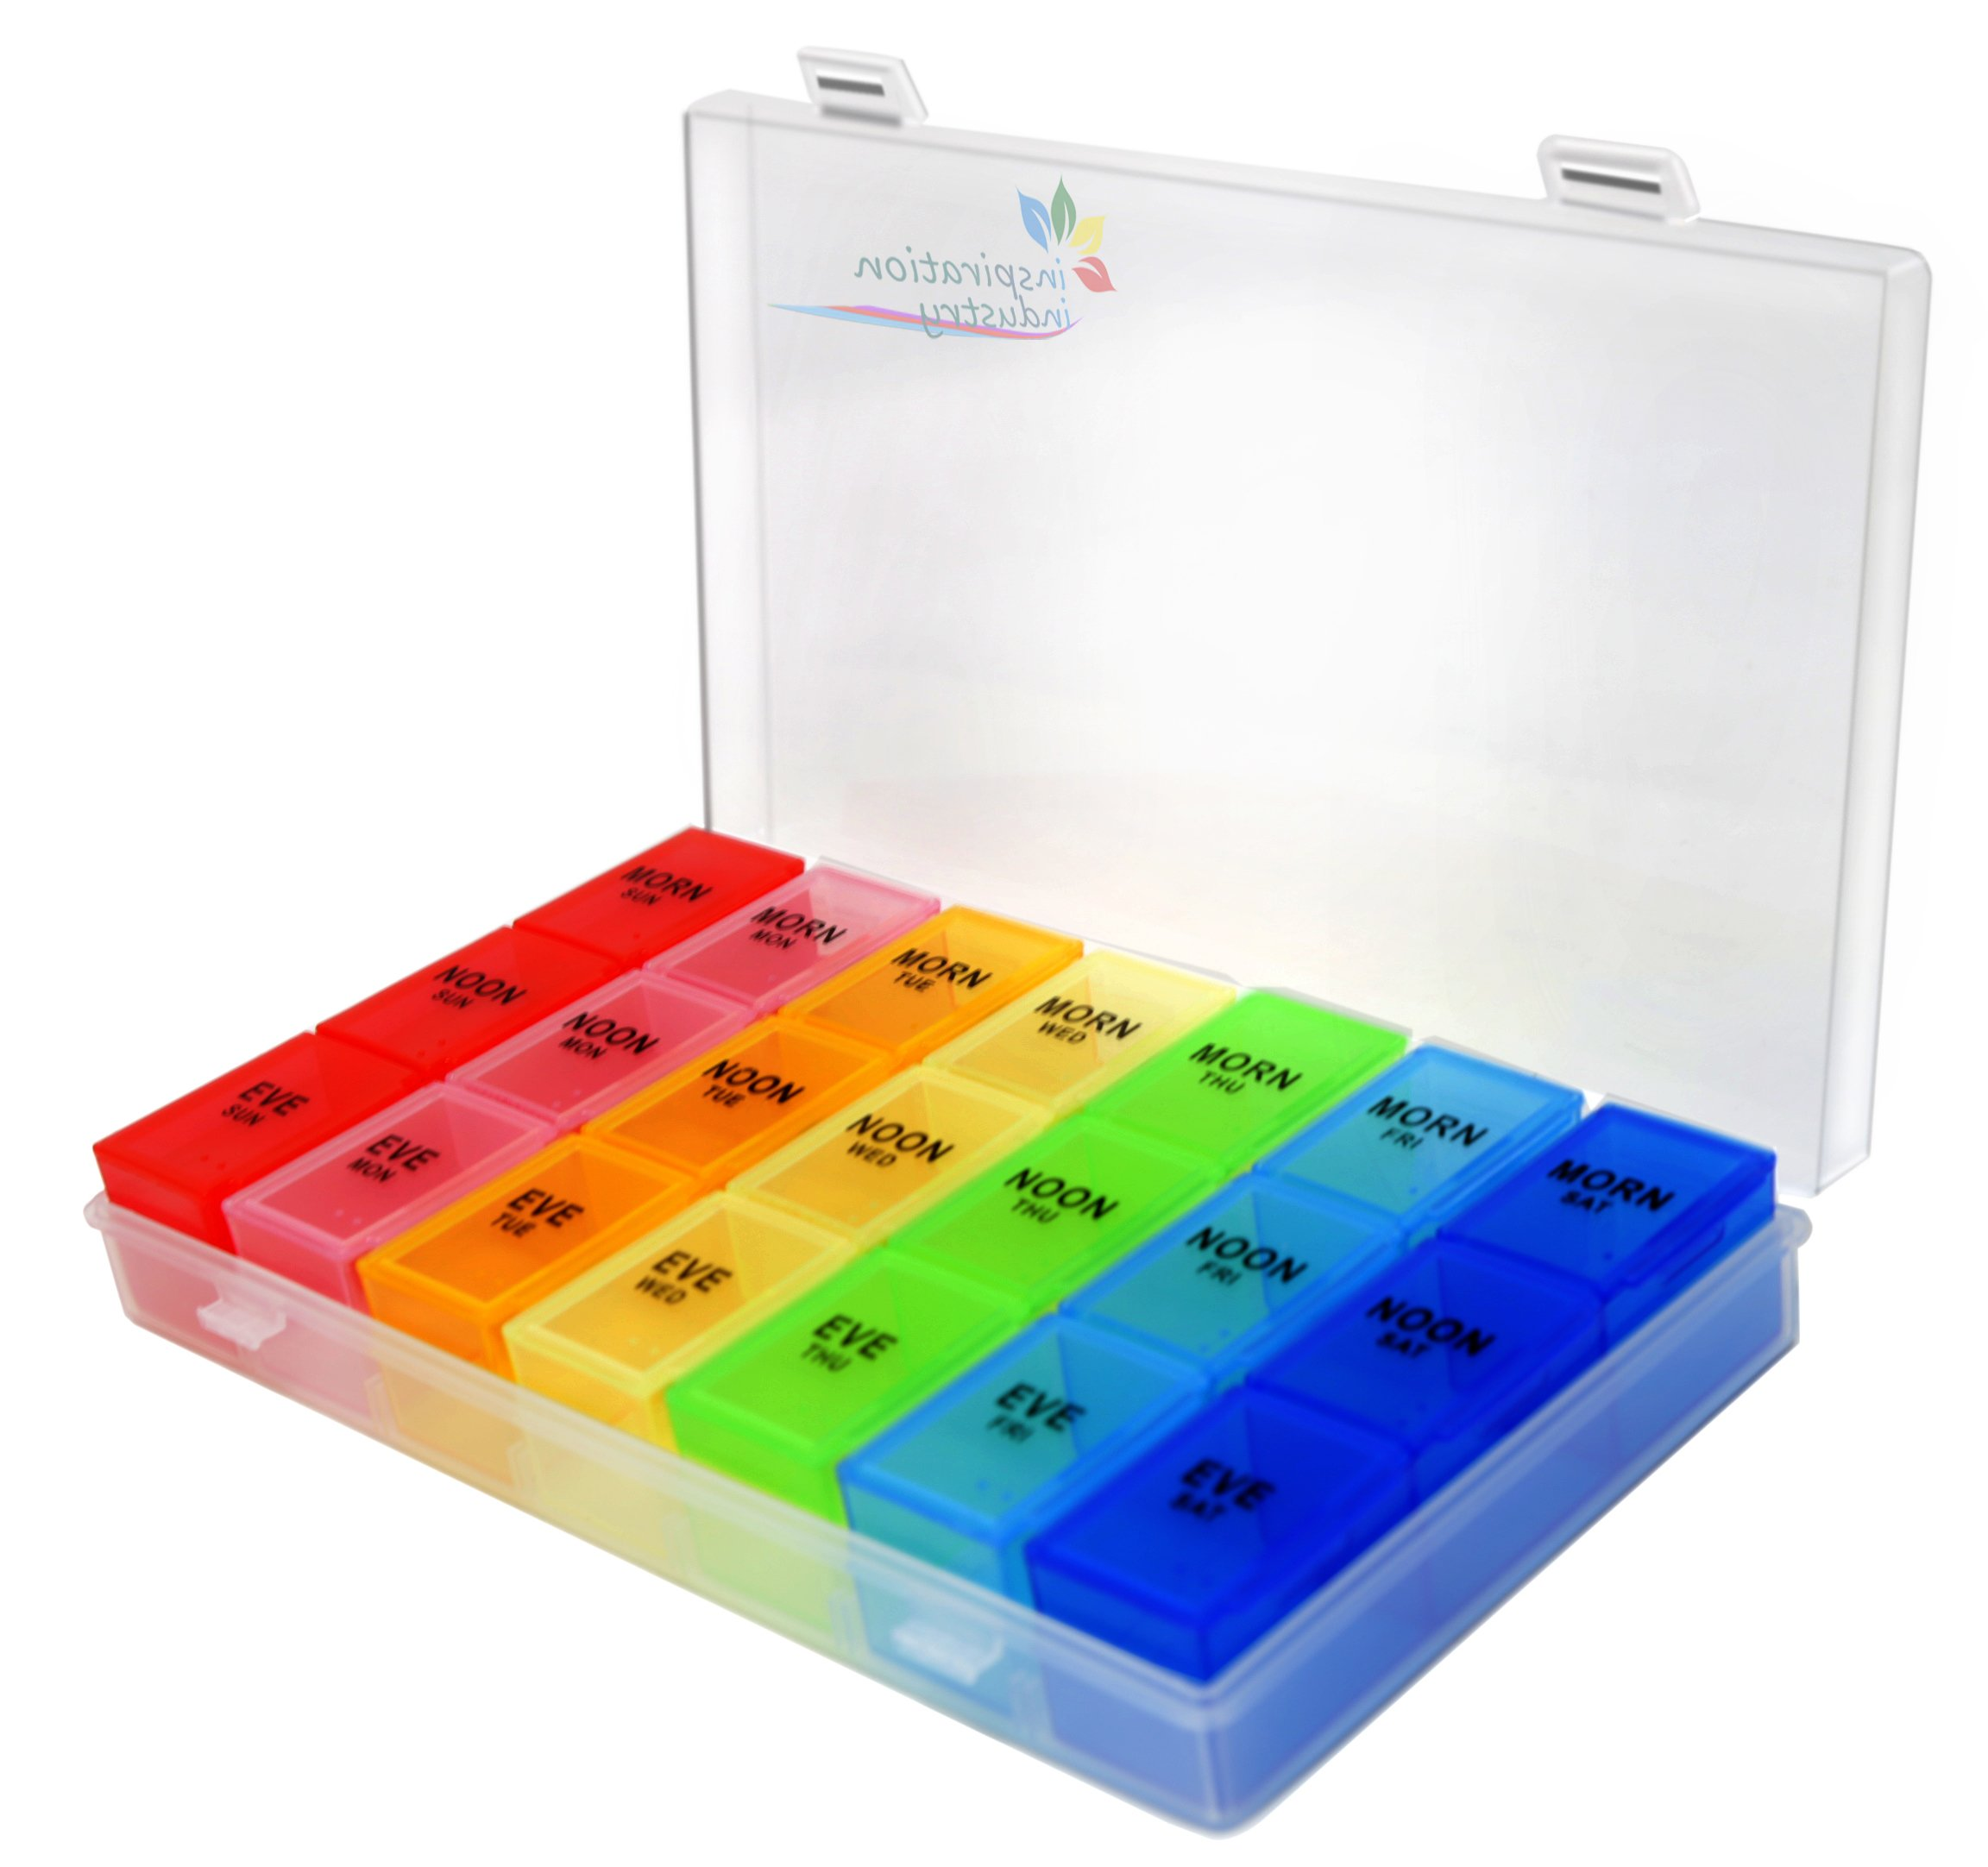 Rainbow Weekly Pill Organizer with Snap Lids| 7-day AM/PM | Detachable Compartments for Bigger Pills, Vitamin. (Rainbow)